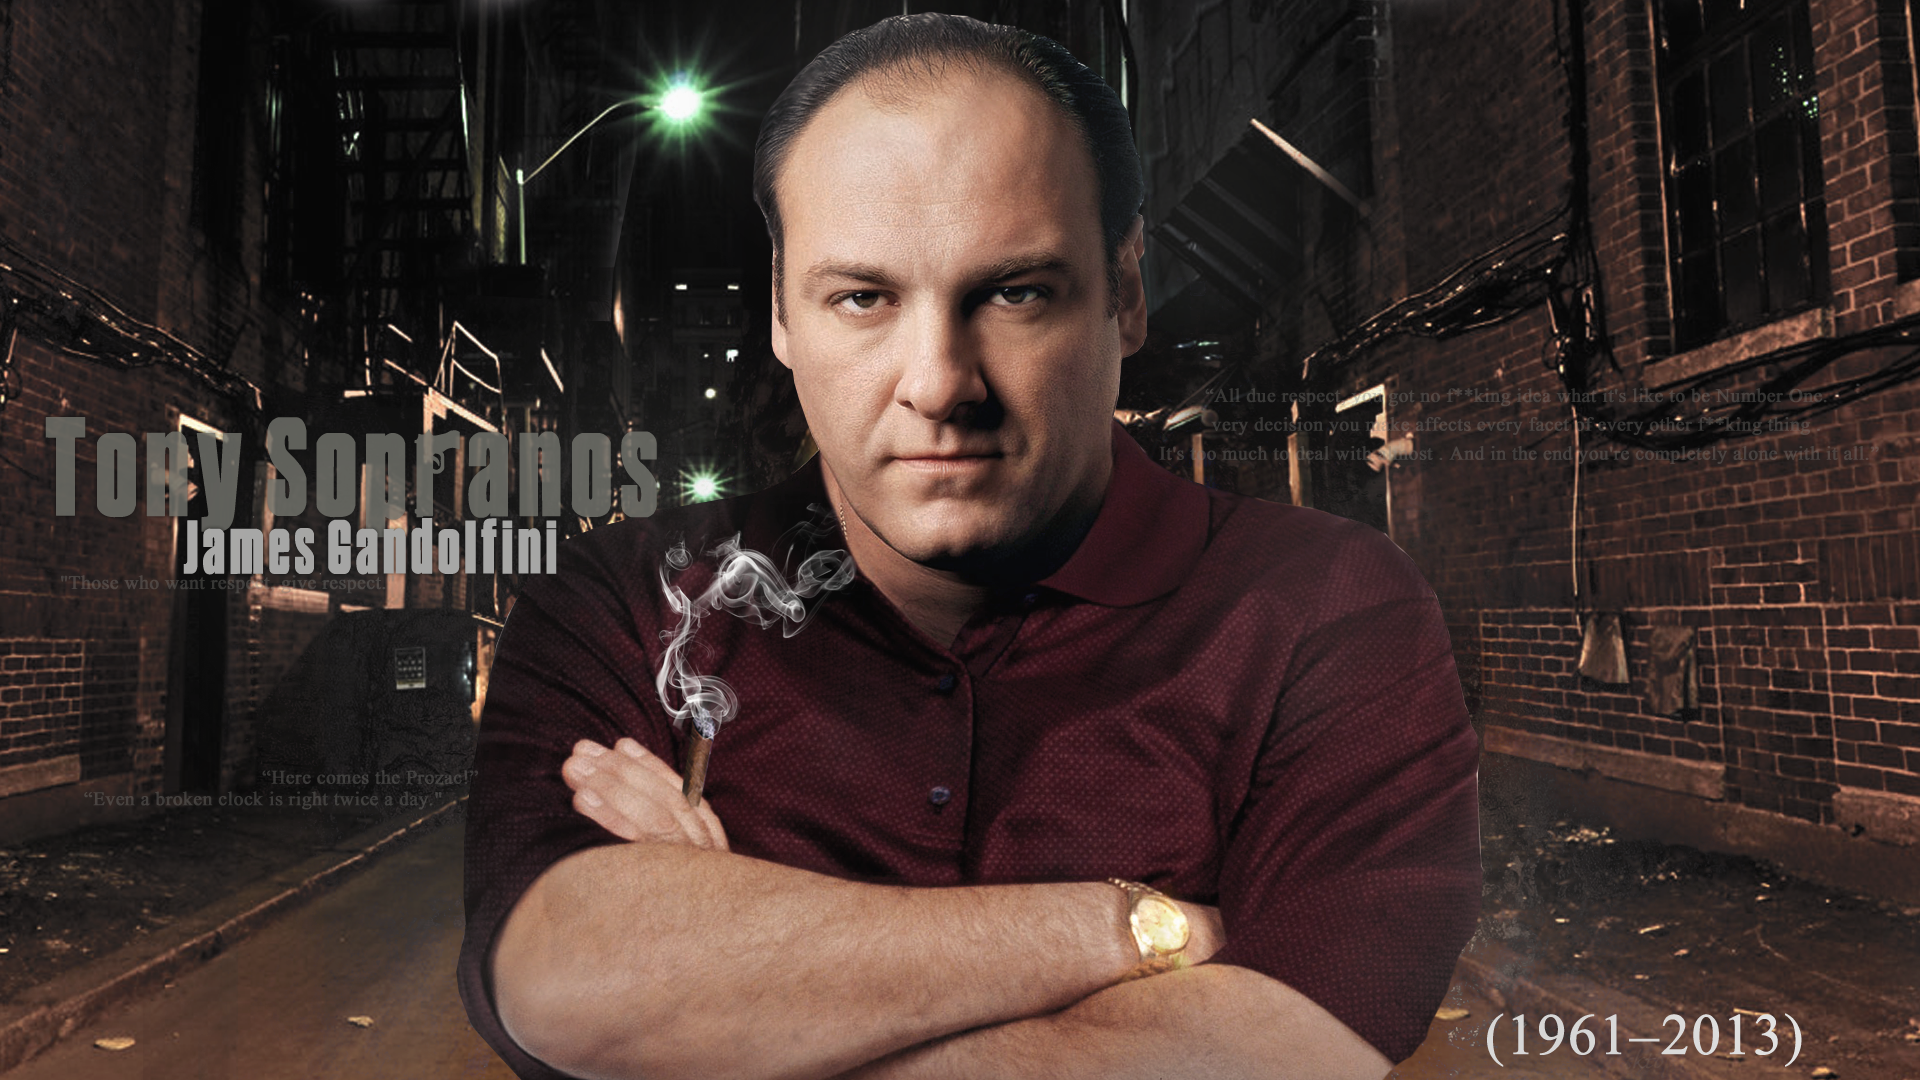 James gandolfini wallpaper 1920x1080 62933 - Sopranos wallpaper ...